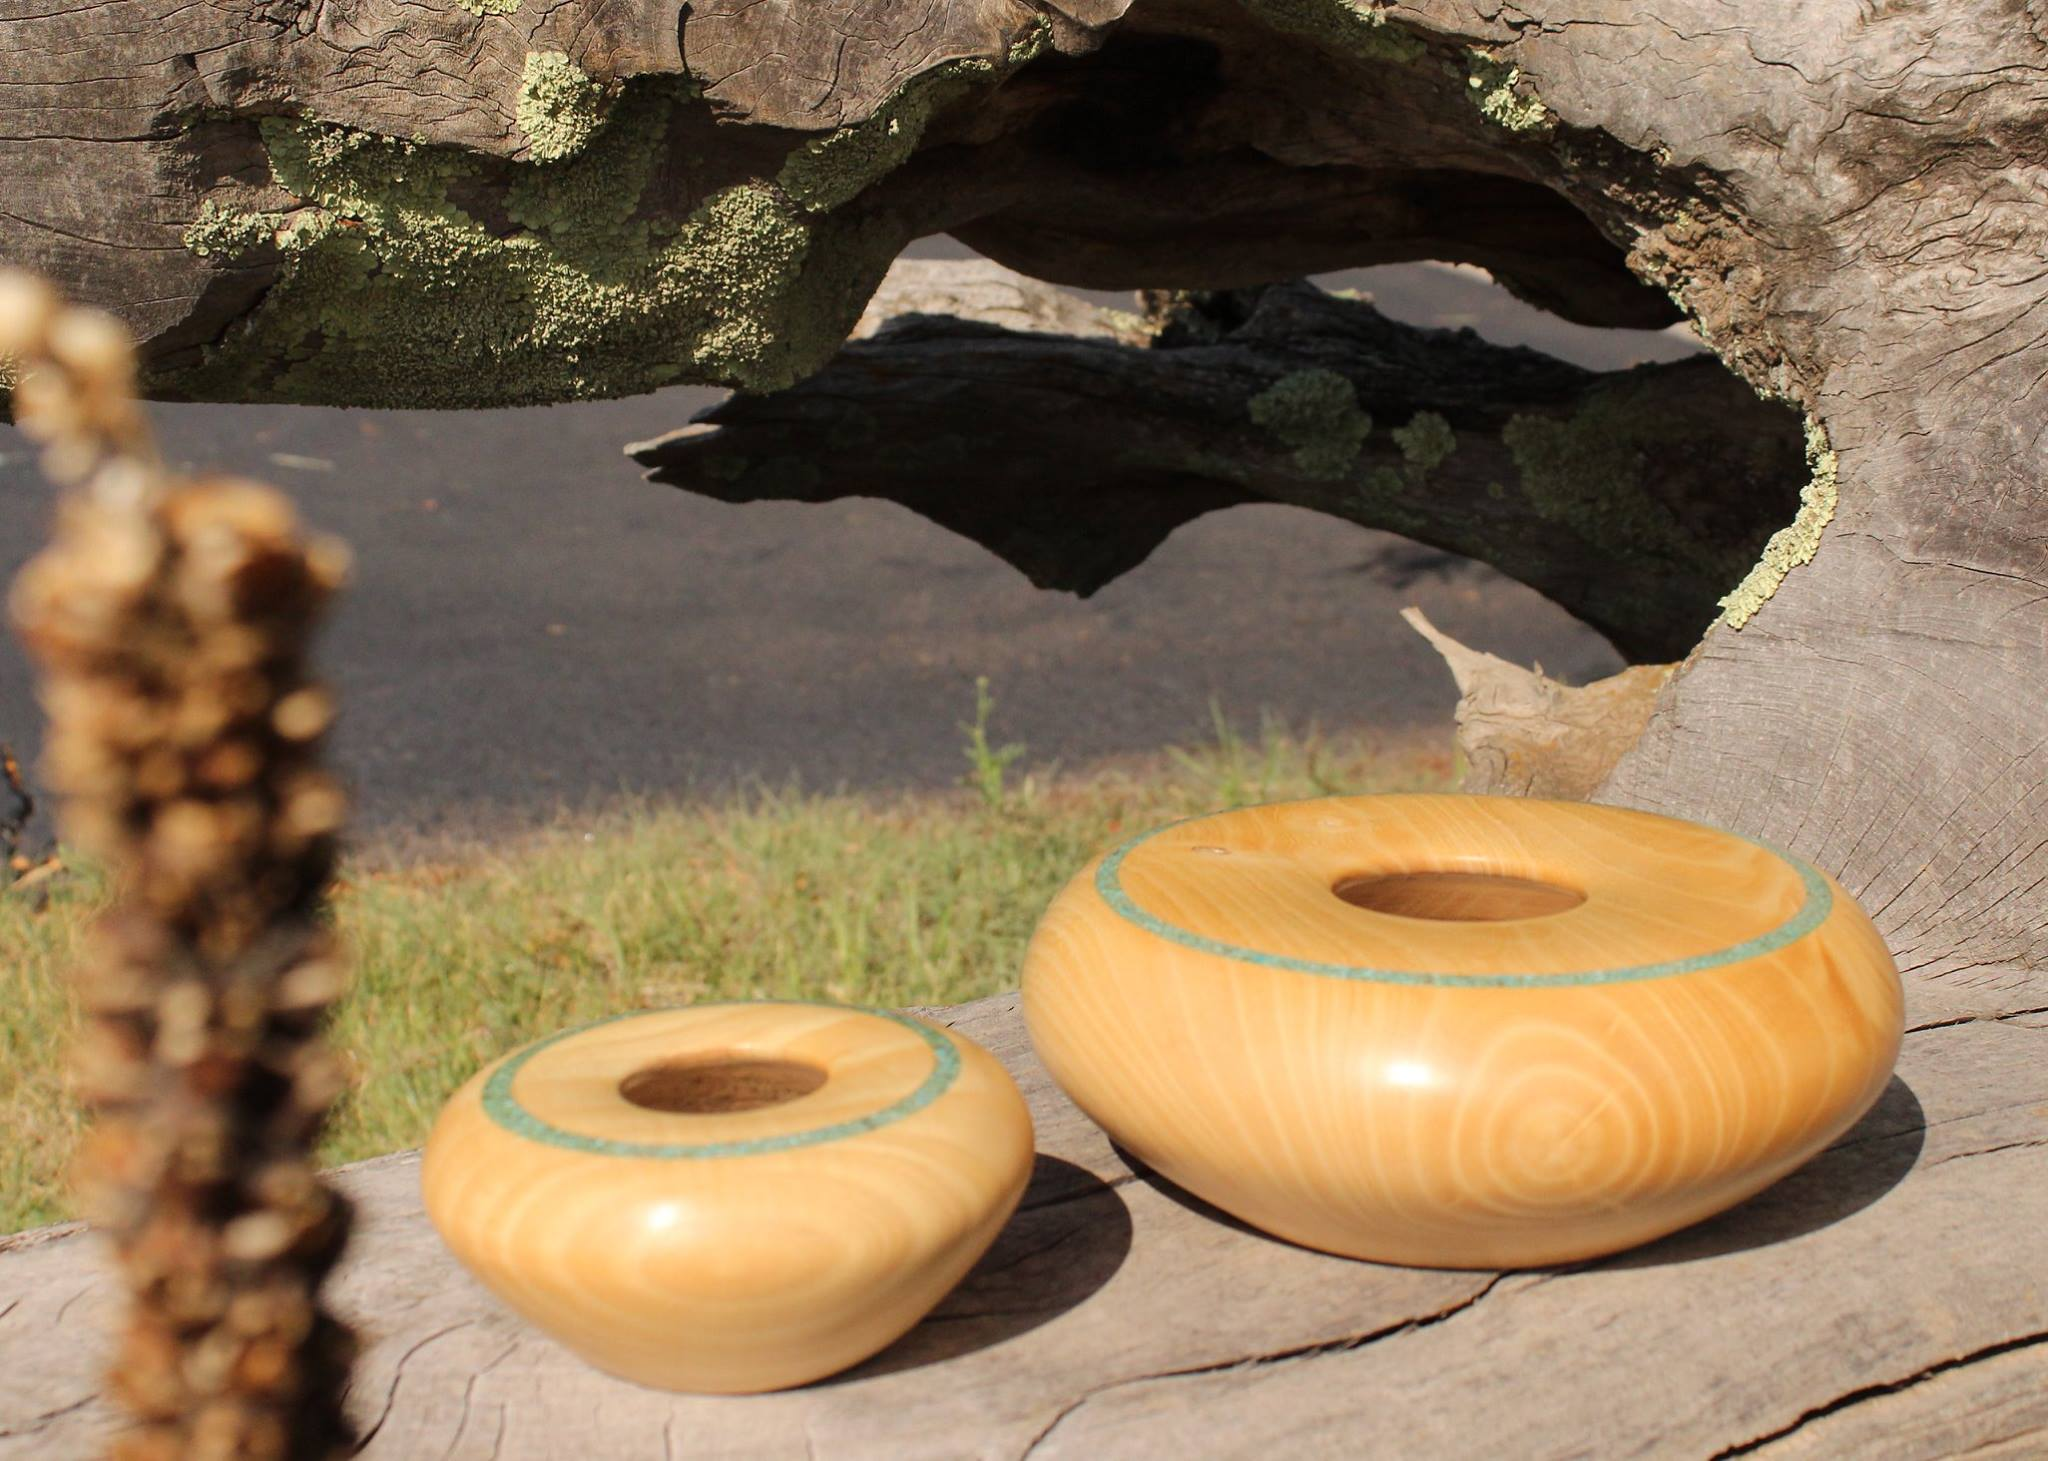 Speaking Wood hollow form bowls with turquoise inlay